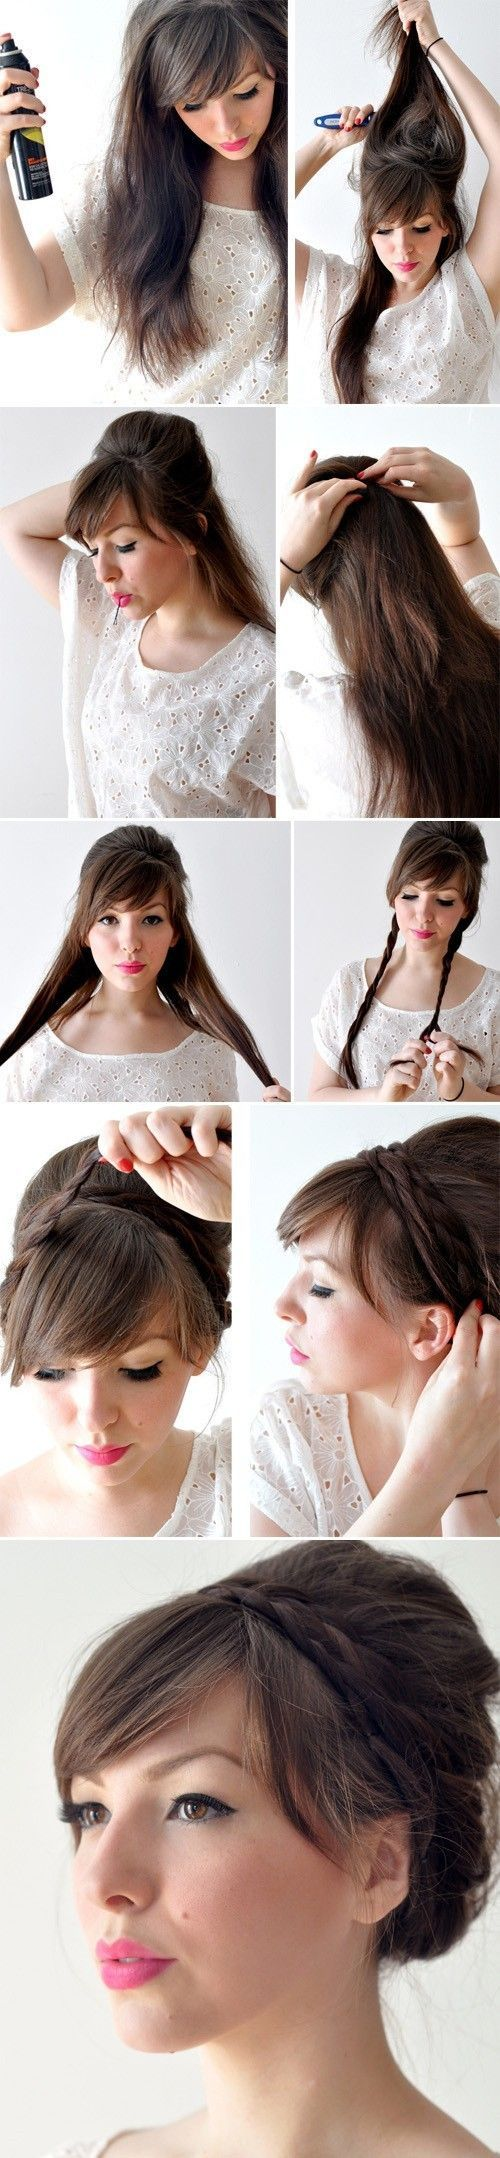 Pretty hair, this is really awesome, i need to try this one time.